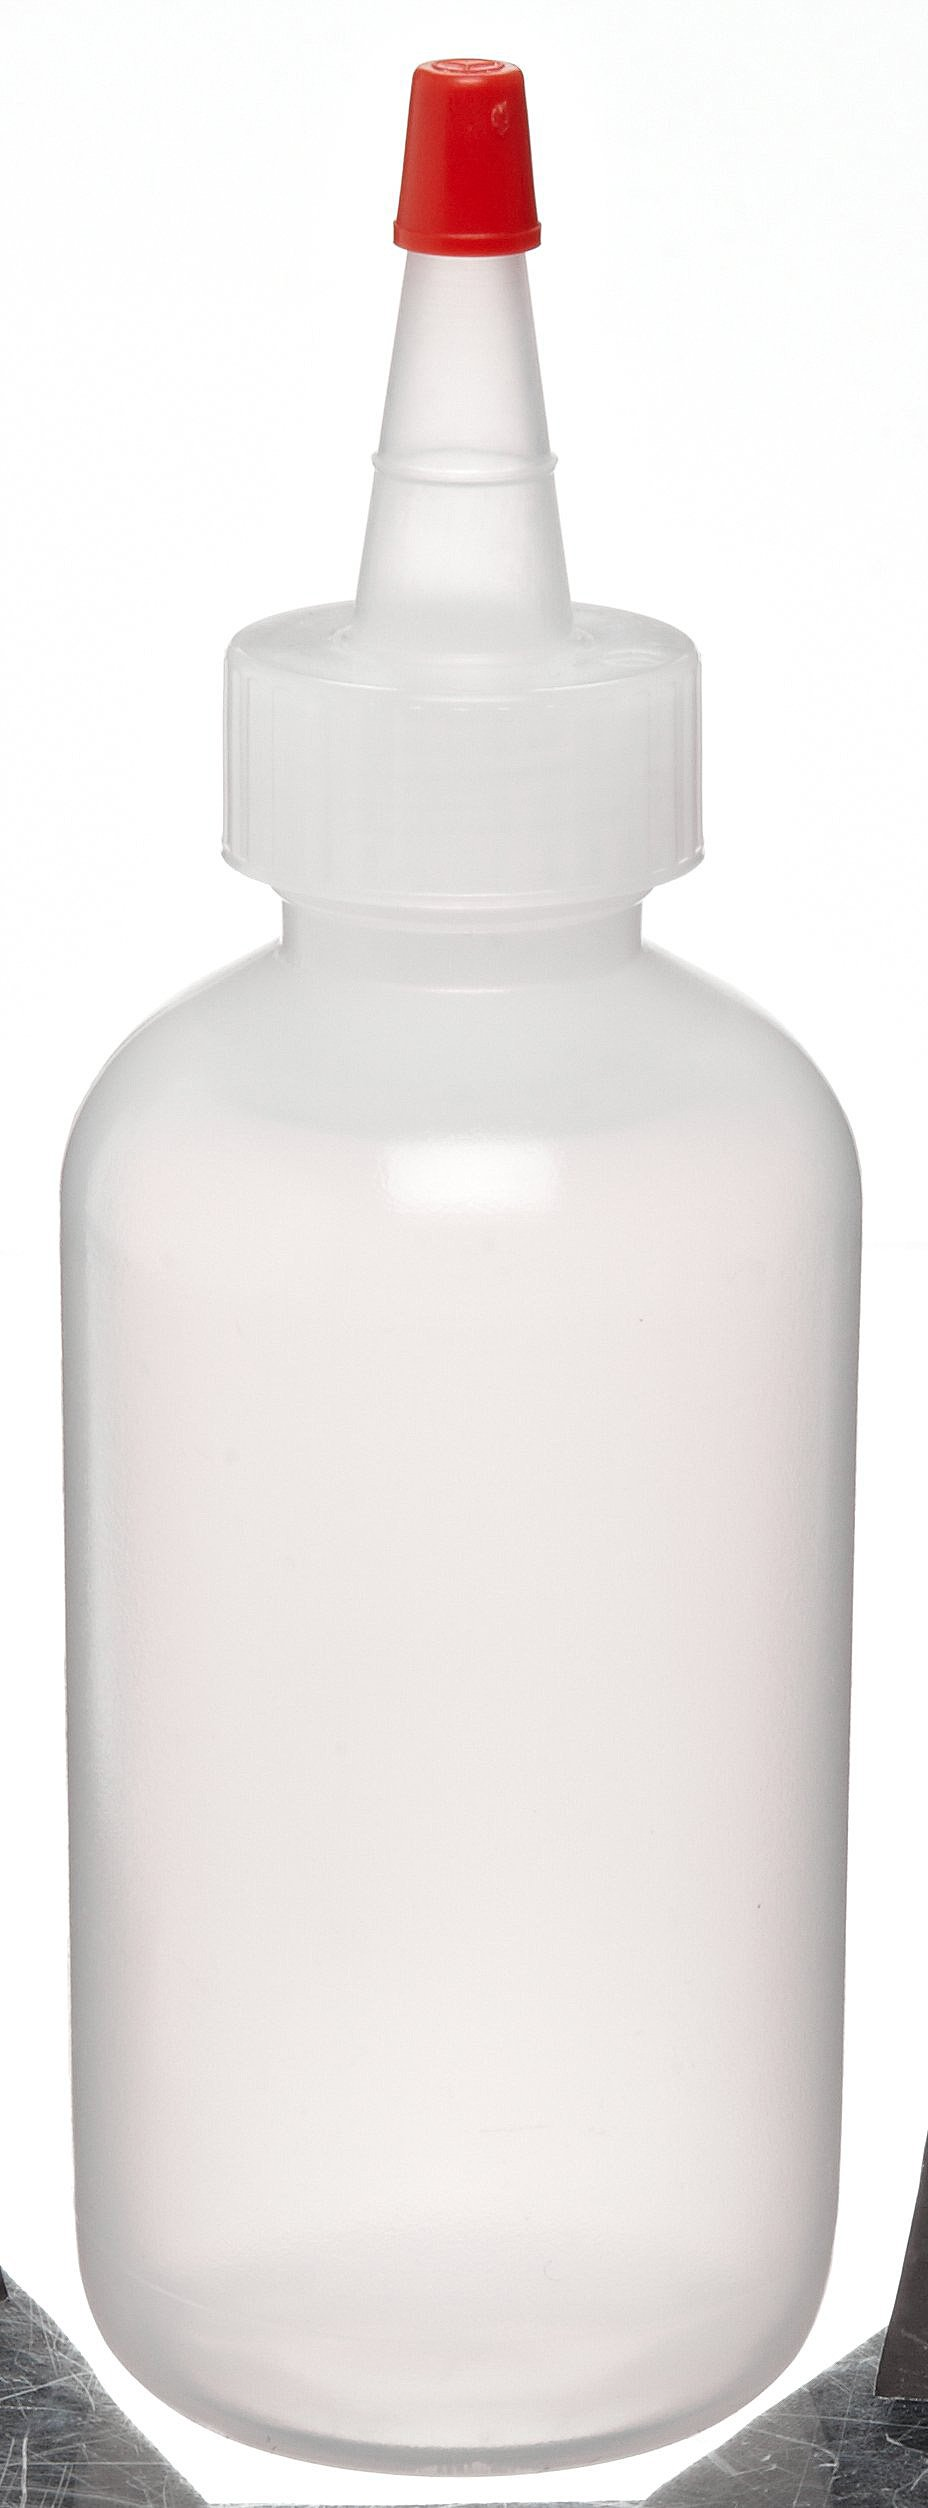 Bel-Art Dispensing/Drop 15ml (¹/₂oz) Polyethylene Bottles; 15mm Closure (Pack of 12) (F11637-0012)